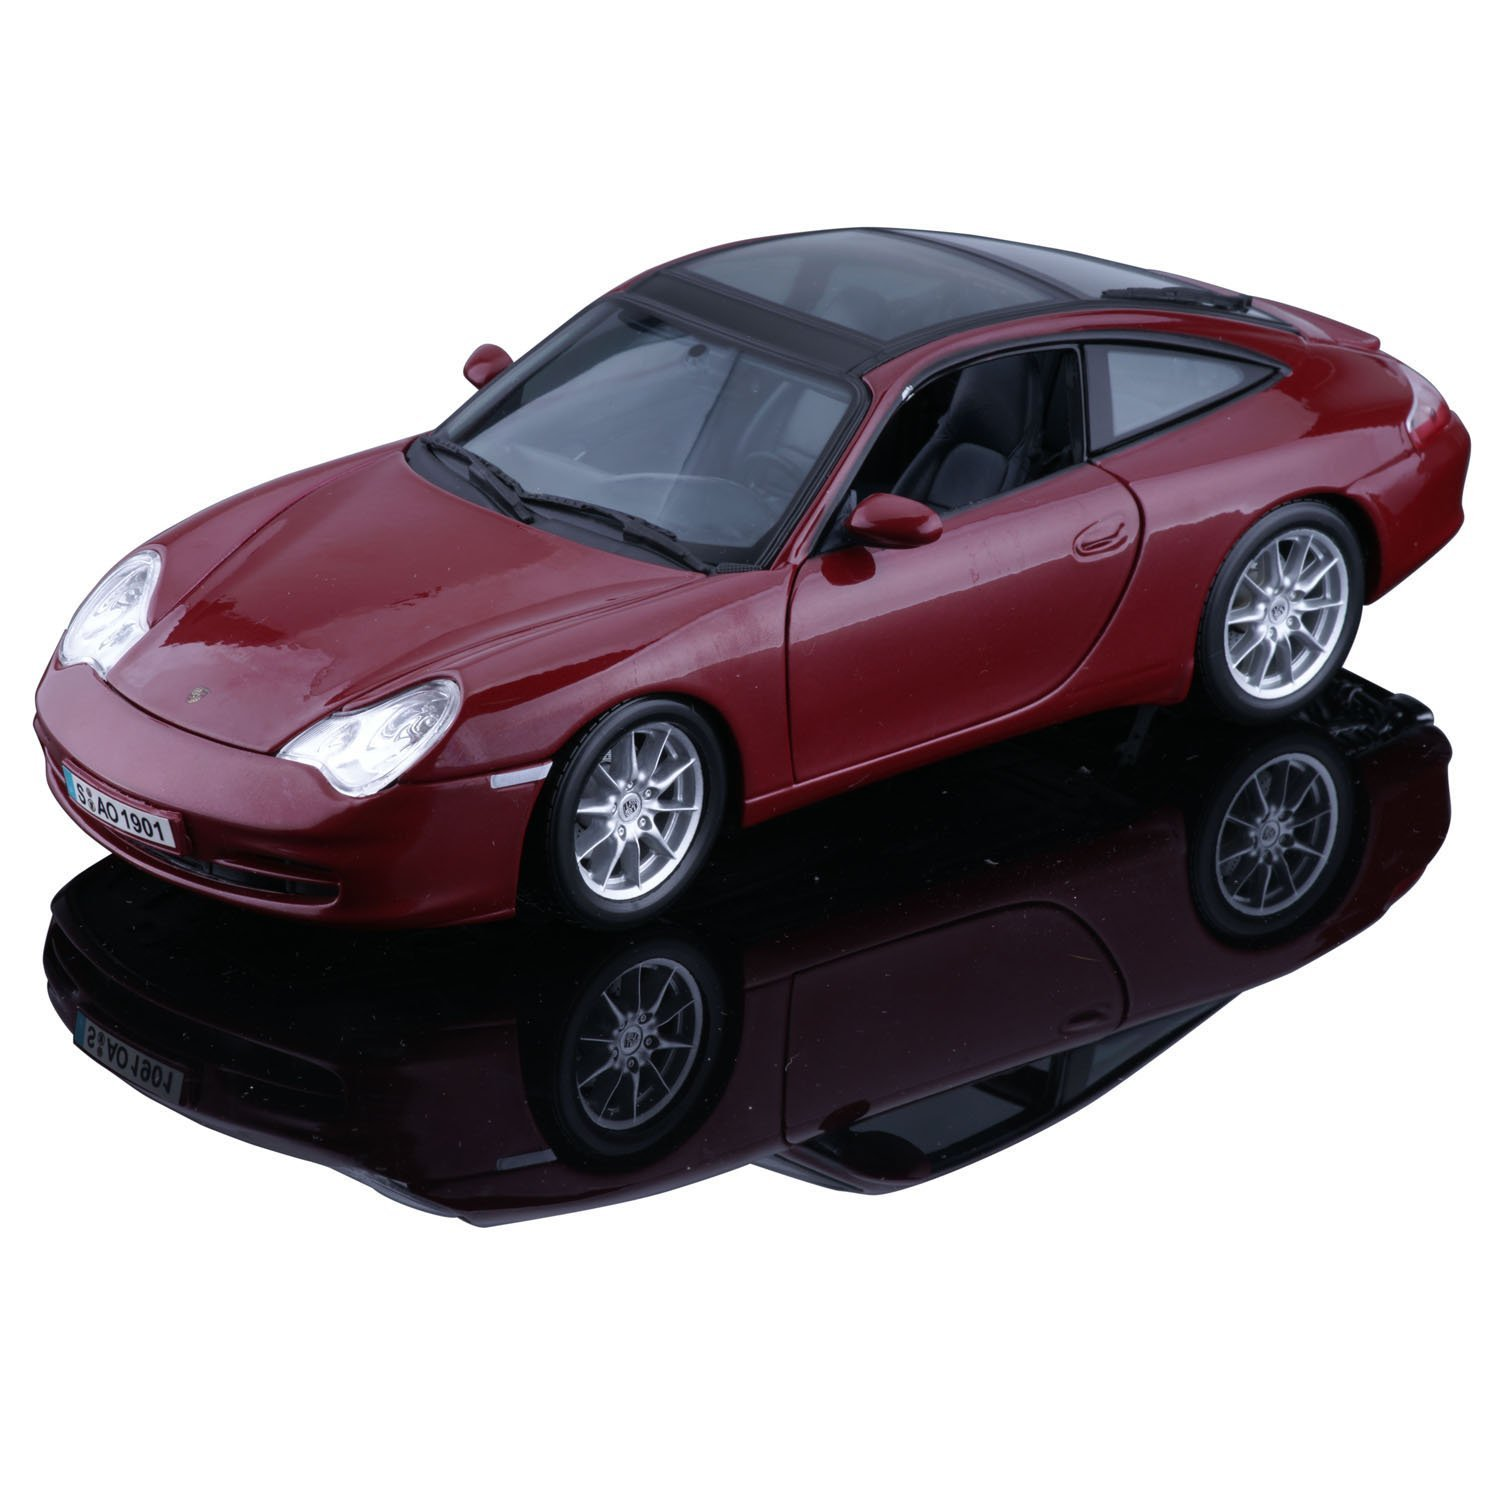 maisto 2002 porsche 911 996 targa red 31627 in 1 18 scale mdiecast. Black Bedroom Furniture Sets. Home Design Ideas